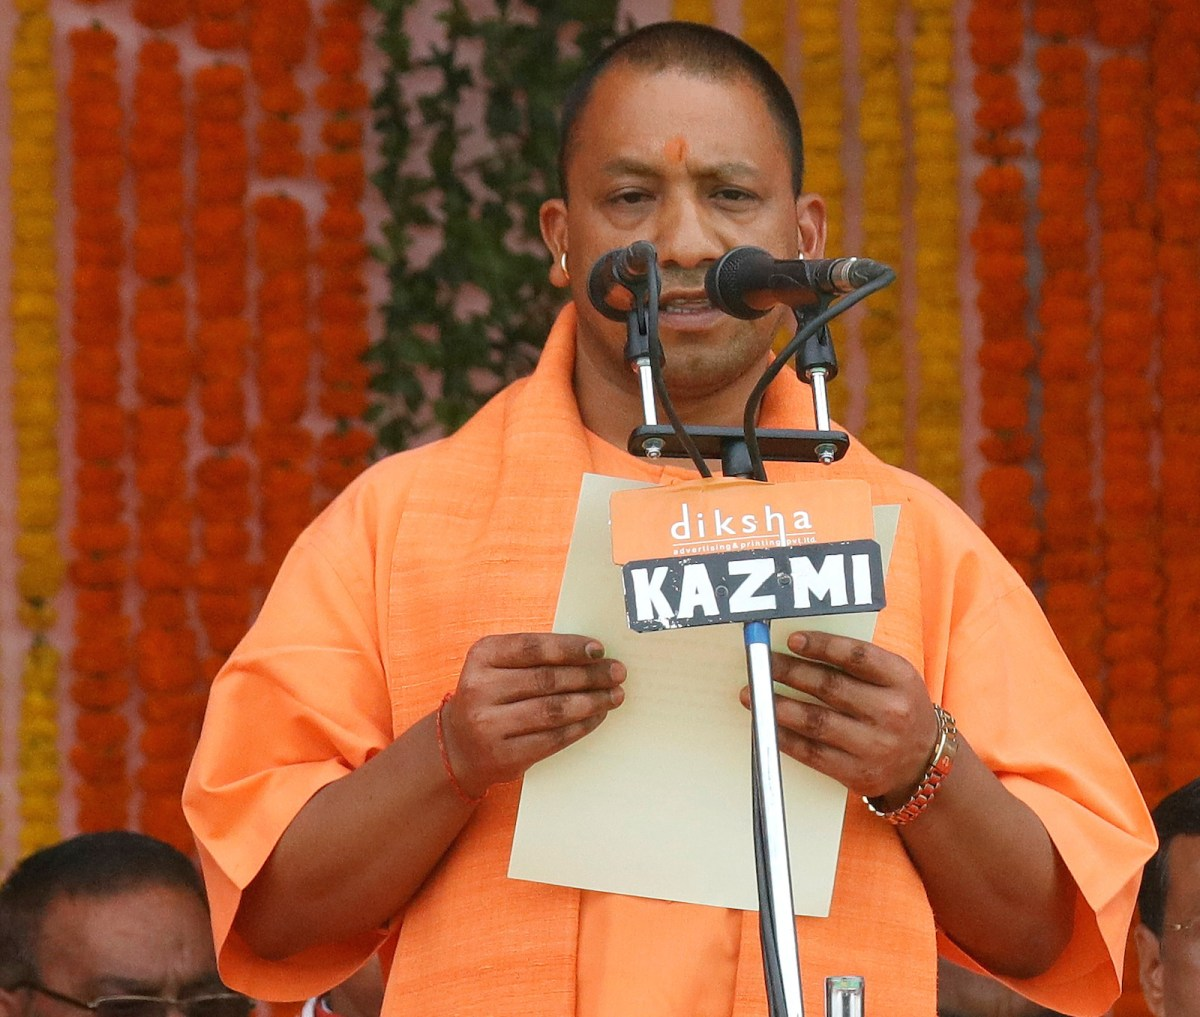 Yogi Adityanath takes the oath as the new chief minister of Uttar Pradesh during a swearing-in ceremony March 19. His appointment by Prime Minister Narendra Modi is controversial because of the firebrand cleric's anti-Muslim views. Photo: Reuters/Pawan Kumar